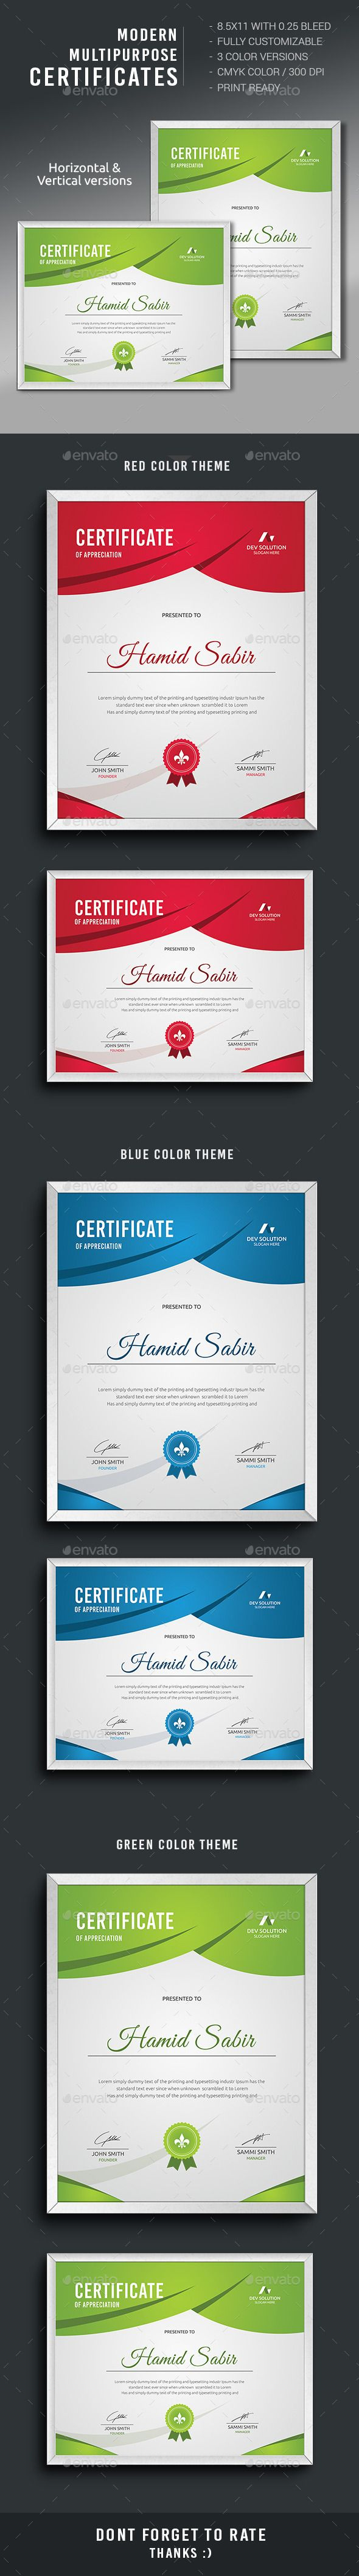 Certificate Template PSD. Download here: http://graphicriver.net/item/certificate/12991772?ref=ksioks